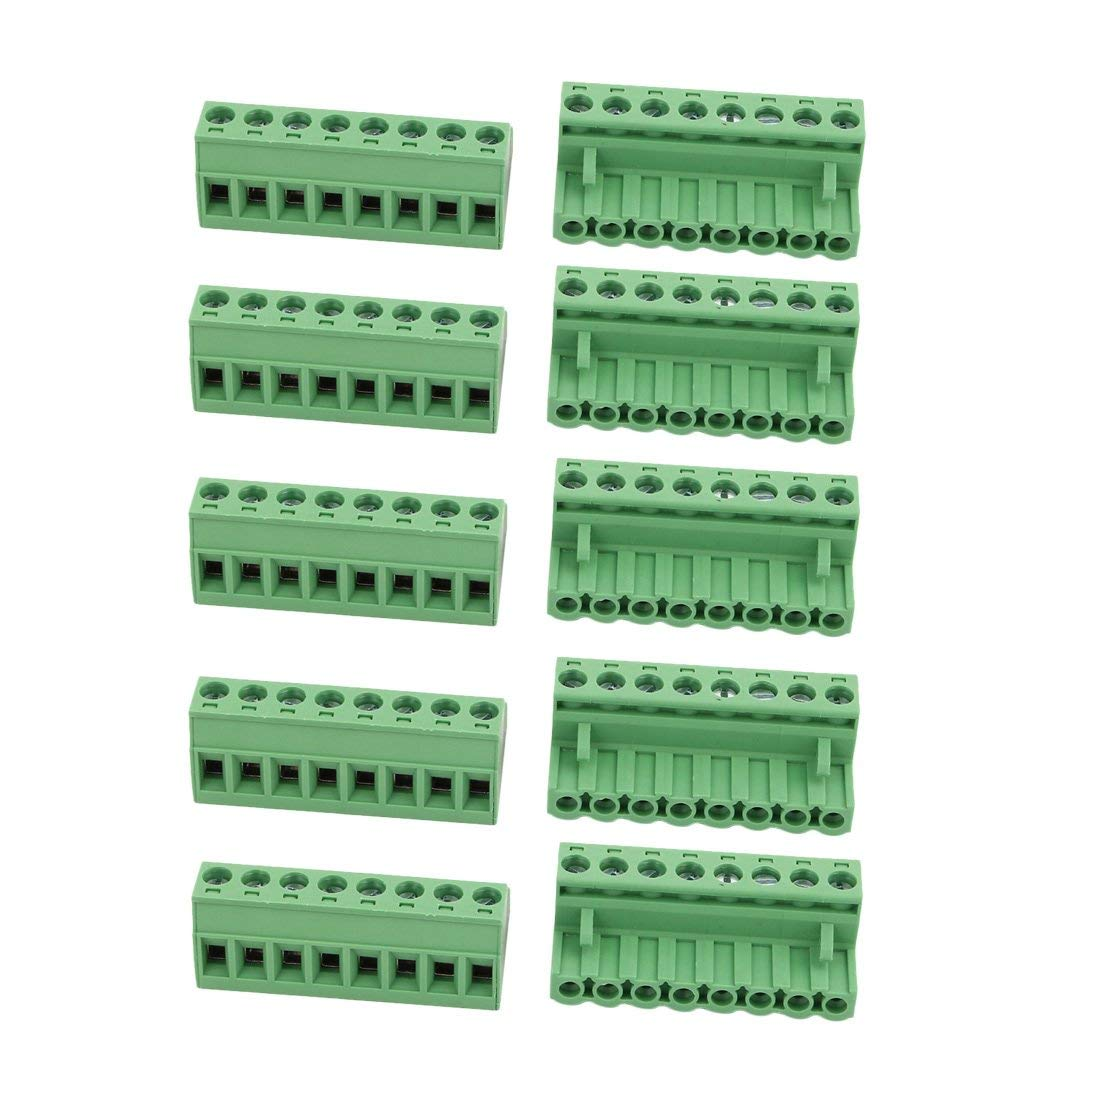 uxcell 10Pcs AC 300V 15A 5.08mm Pitch 8P Terminal Block Wire Connection for PCB Mounting